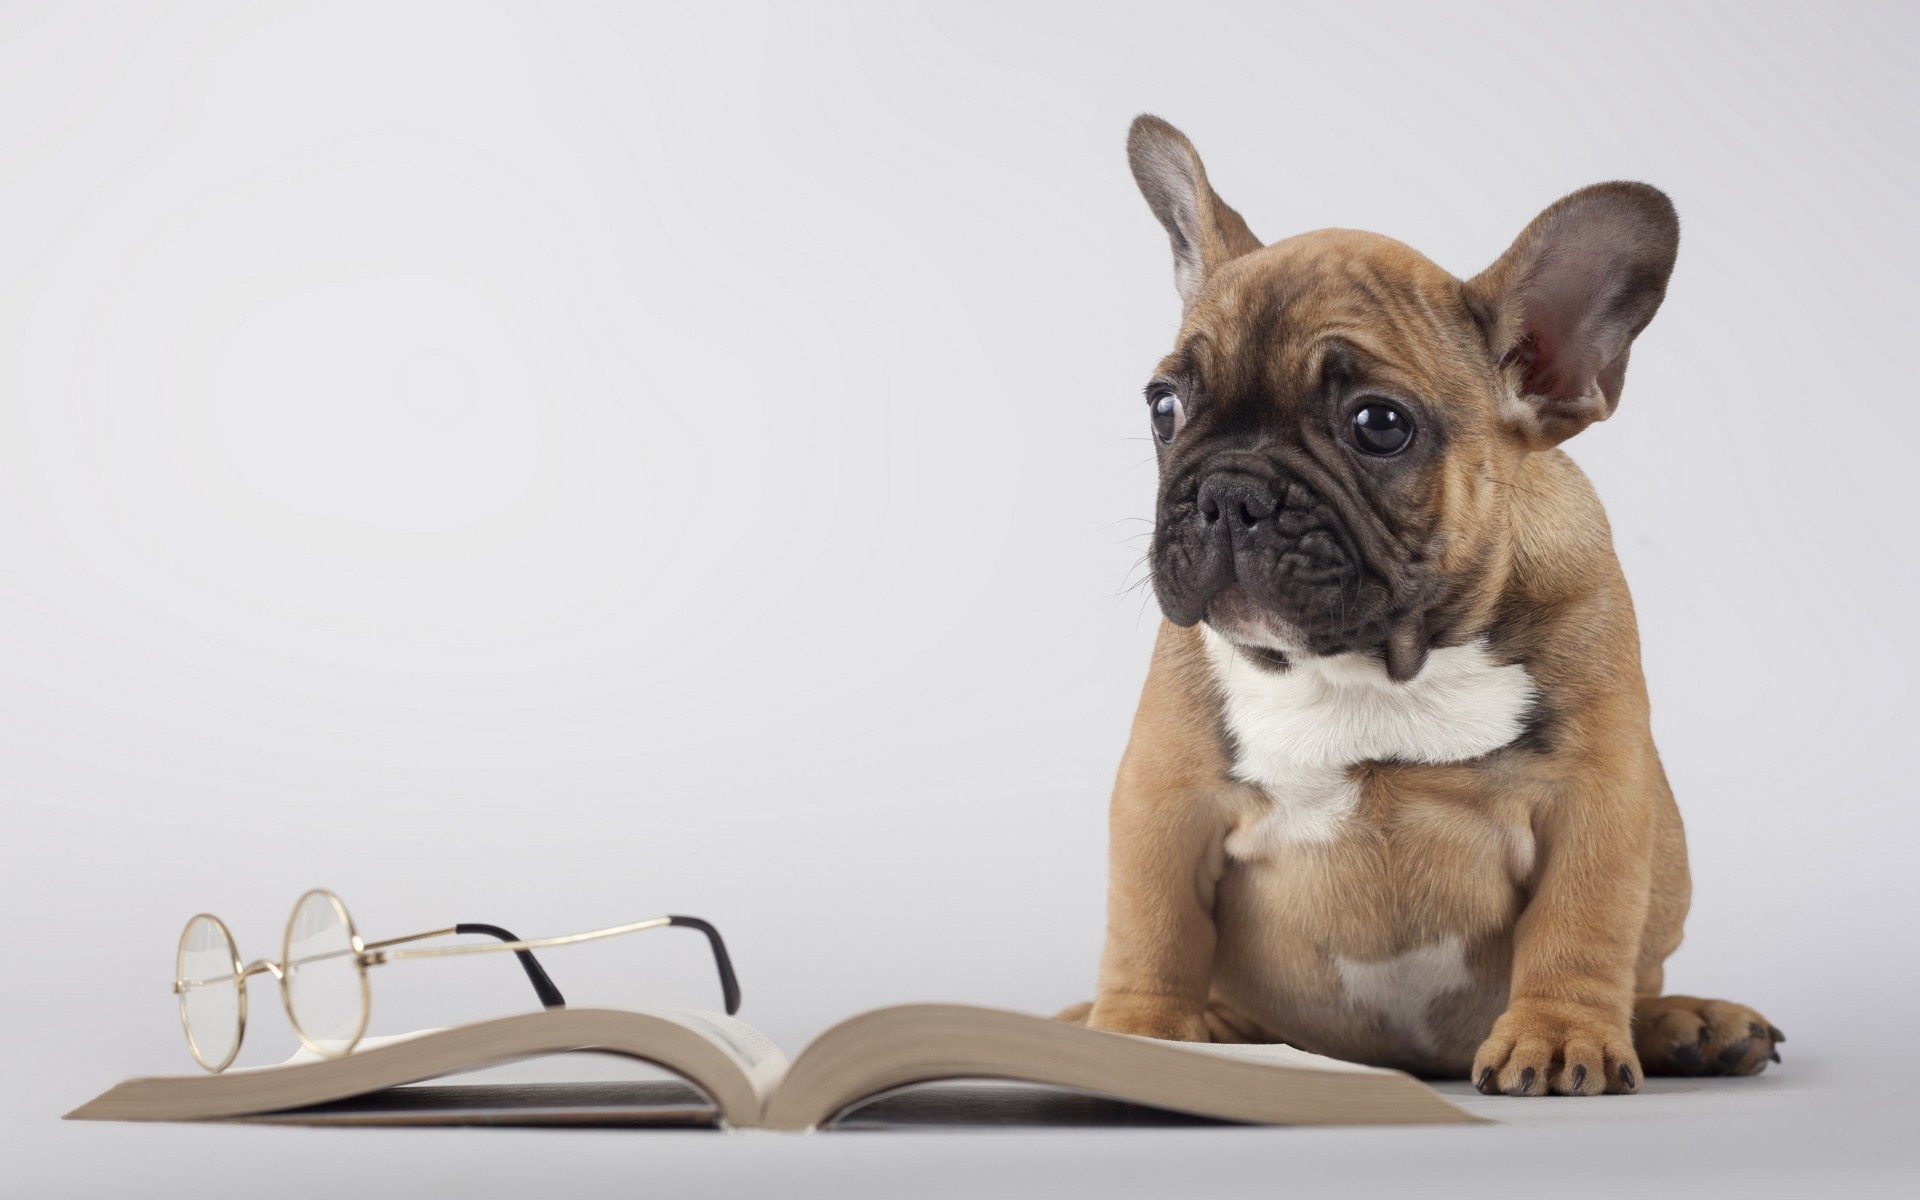 Pug took off his glasses, as tired of reading books